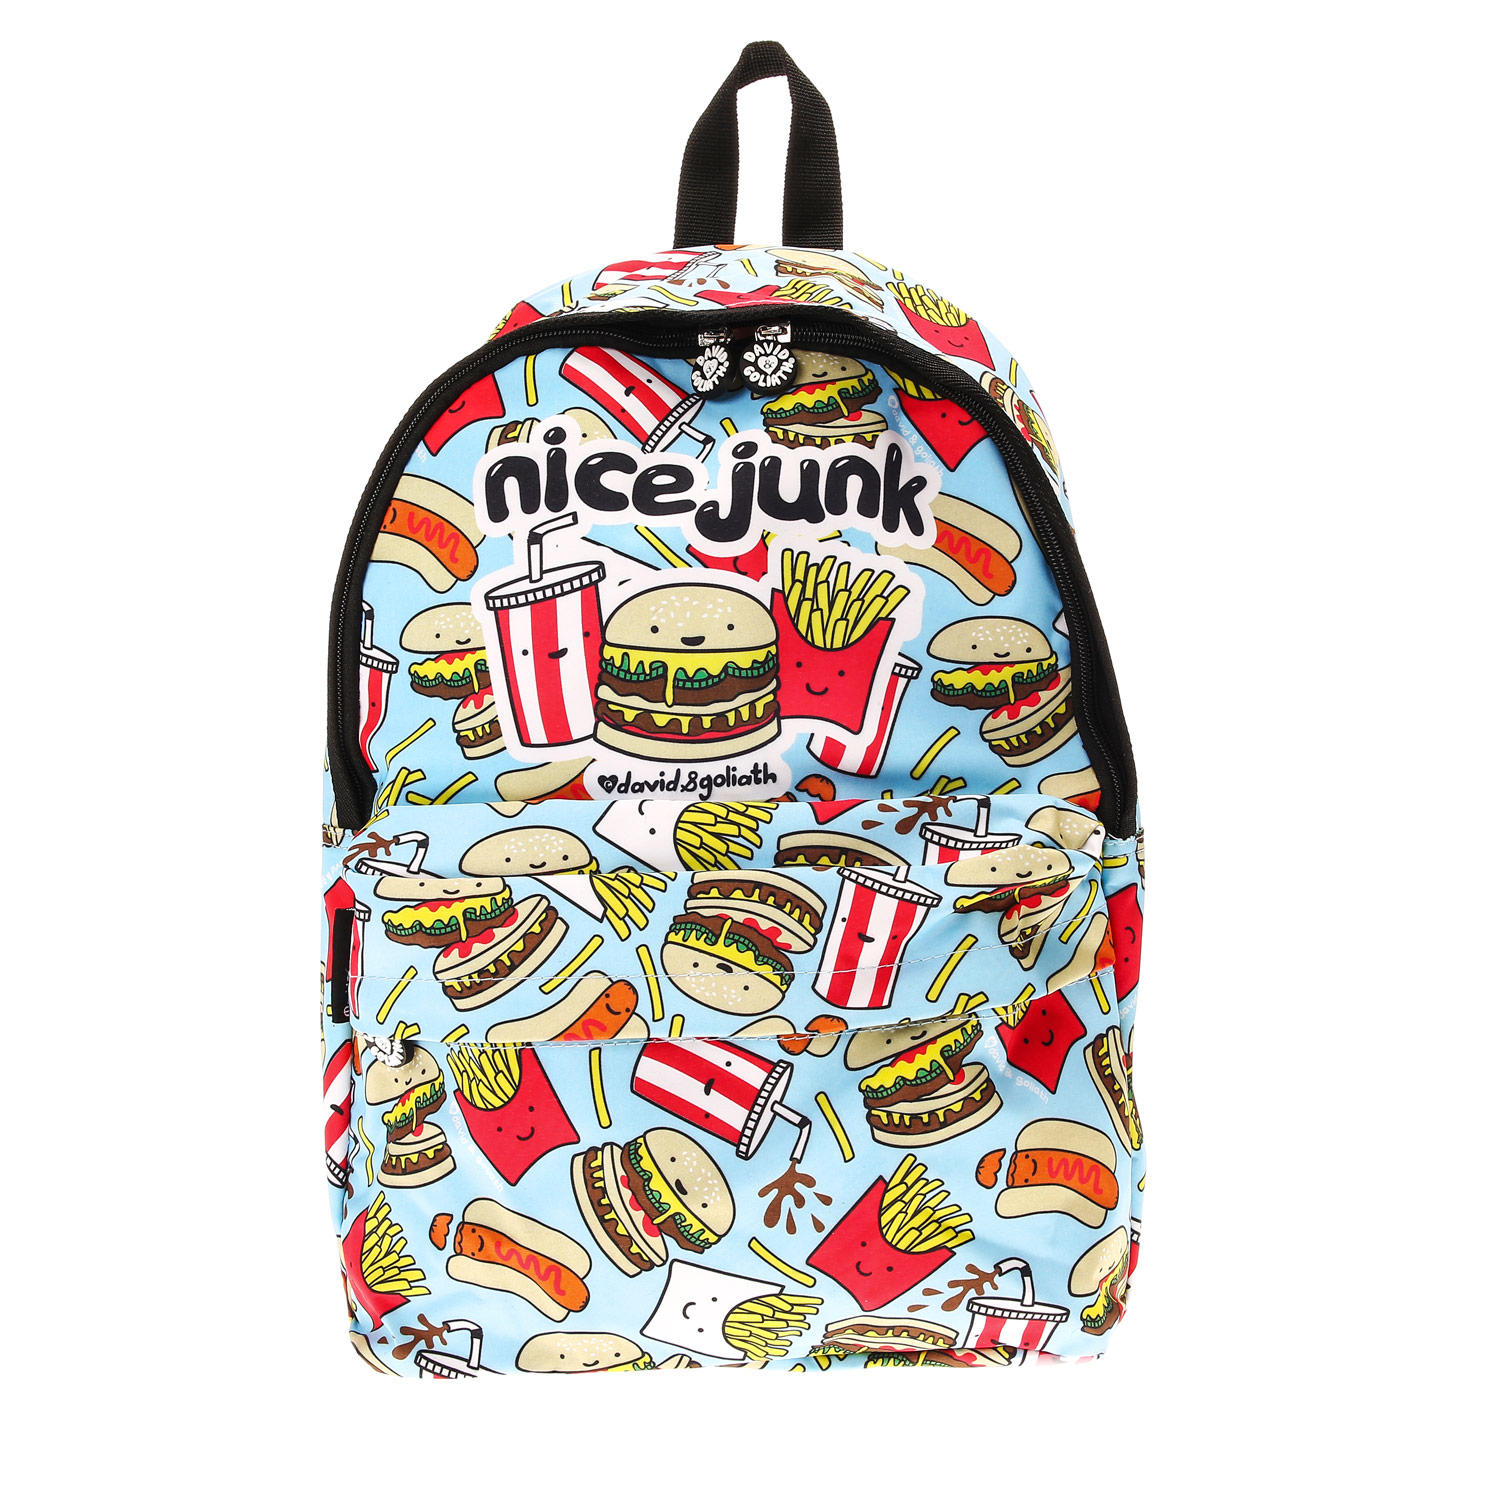 David Amp Goliath Junk Food Backpack From Claires Co Uk